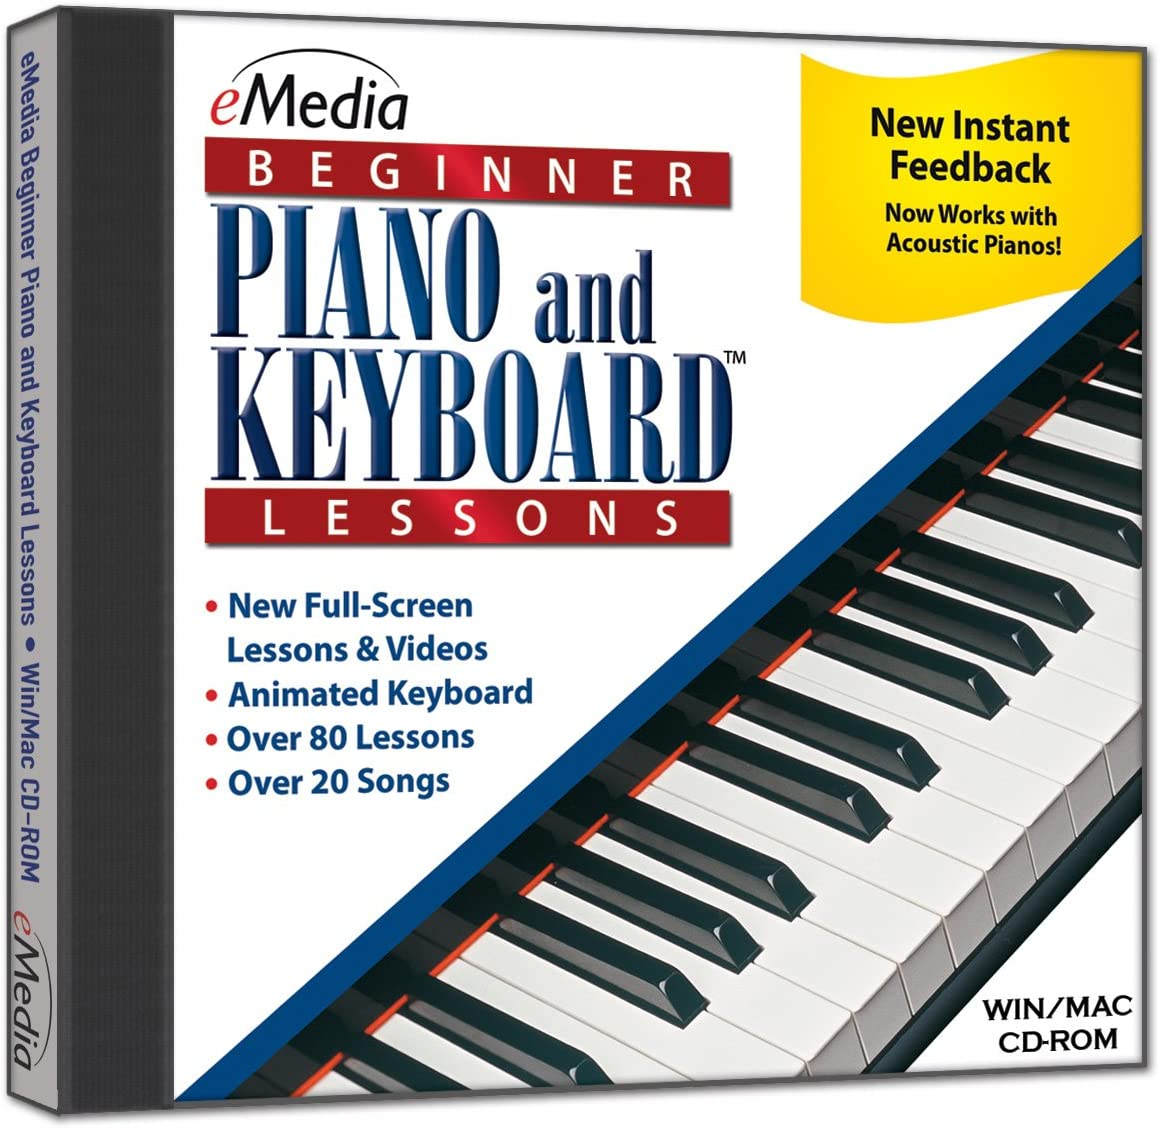 B000AMMRE0 eMedia Beginner Piano and Keyboard Lessons v3 711nBgr9QOL